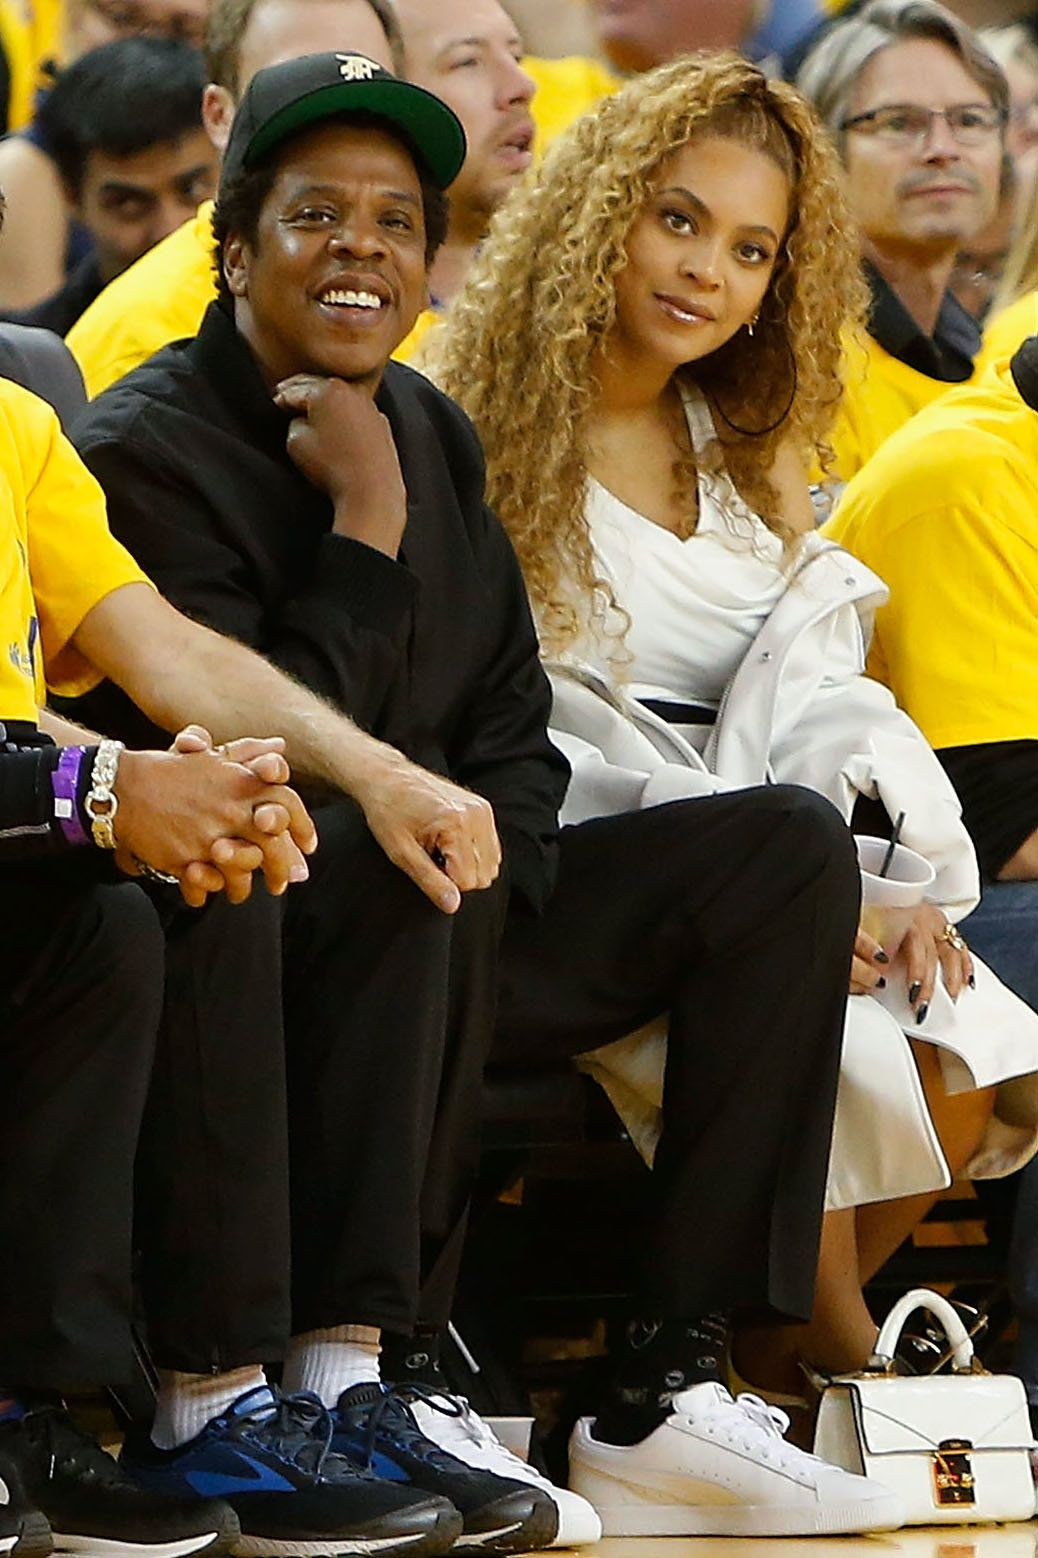 a30f2544c8e7 Jay Z and Beyonce